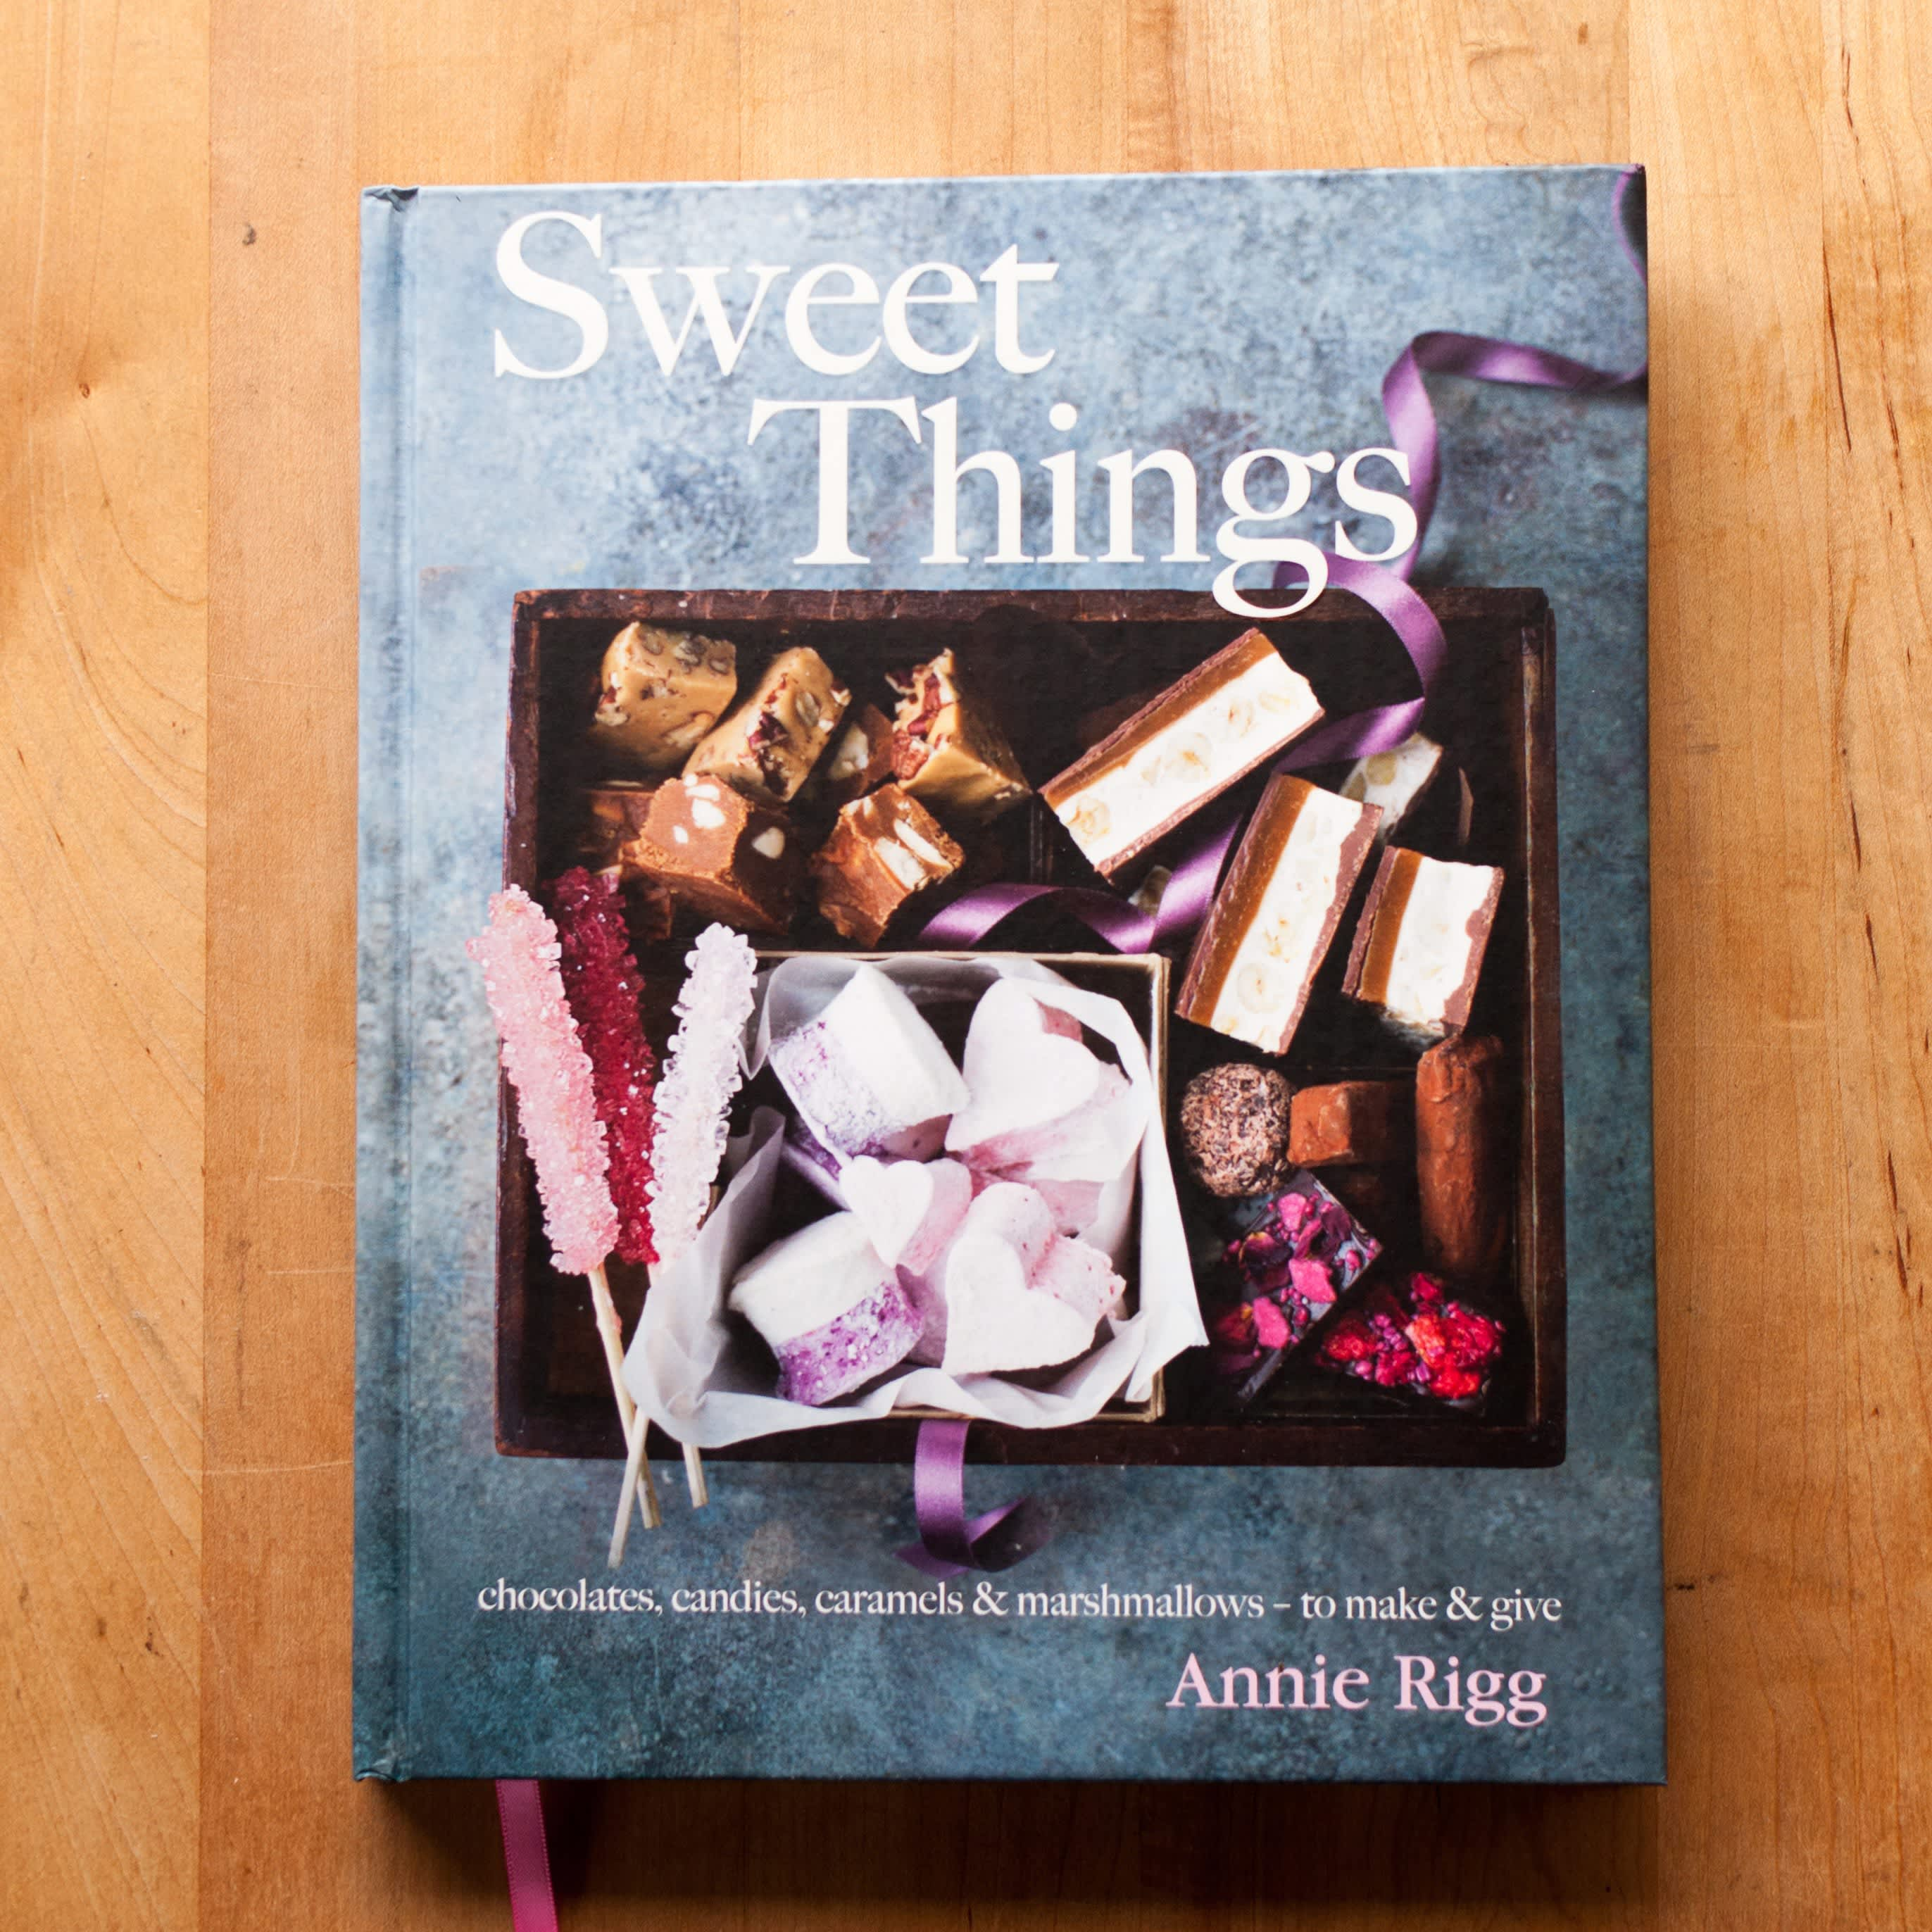 Get Ready to Channel Your Inner Willy Wonka with This Cookbook: gallery image 1